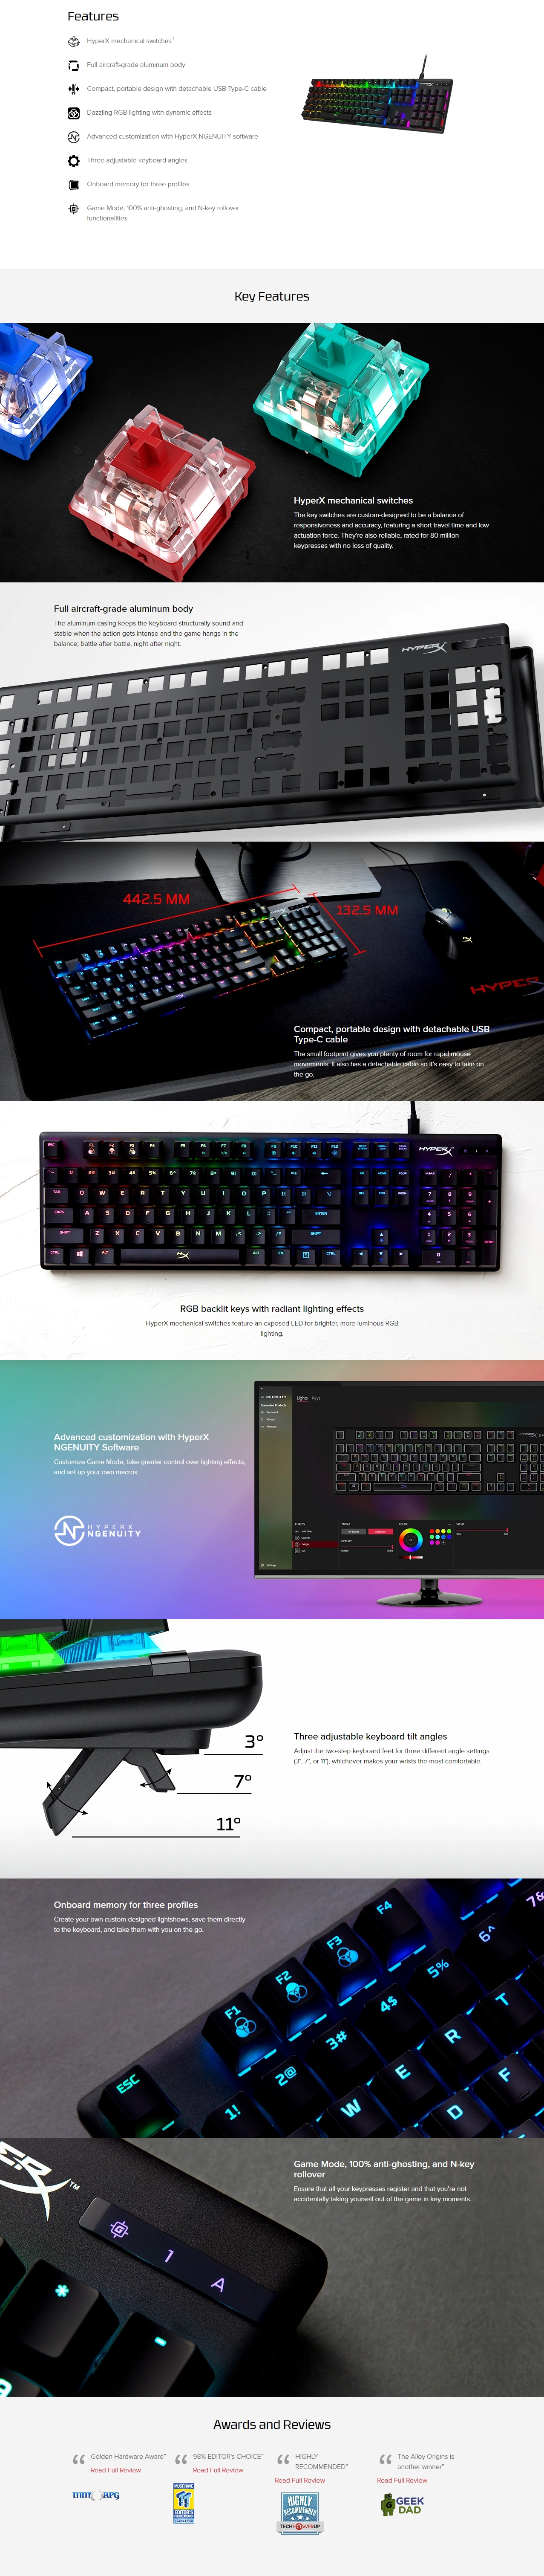 A large marketing image providing additional information about the product Kingston HyperX Alloy Origins RGB Mechanical Gaming Keyboard (HyperX Aqua Switch) - Additional alt info not provided